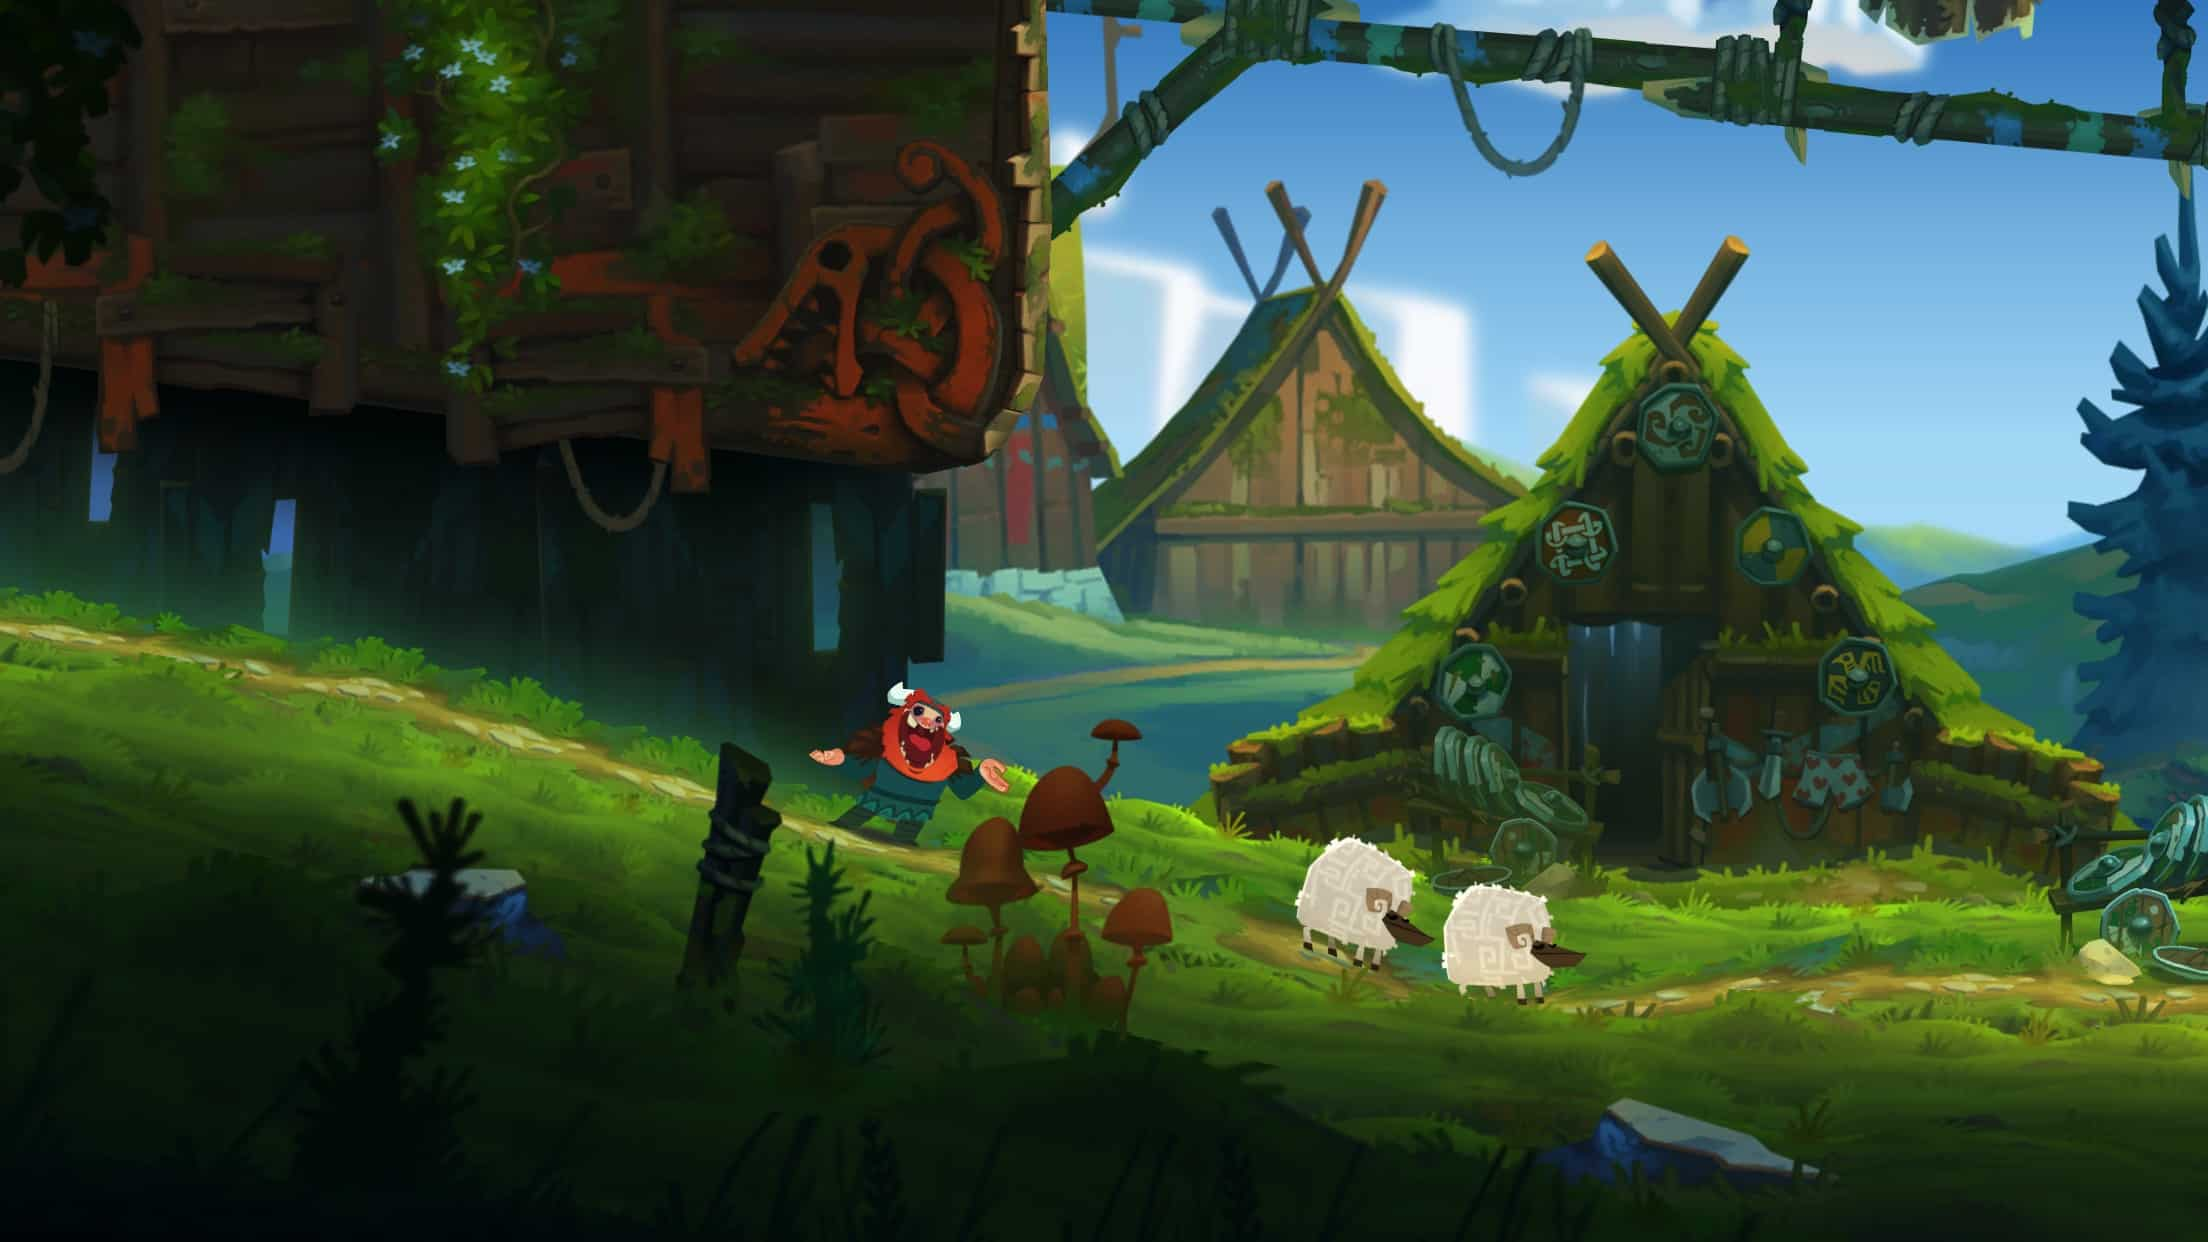 Shelf Wallpaper Iphone Oddmar Is A Viking Themed Platformer From The Makers Of